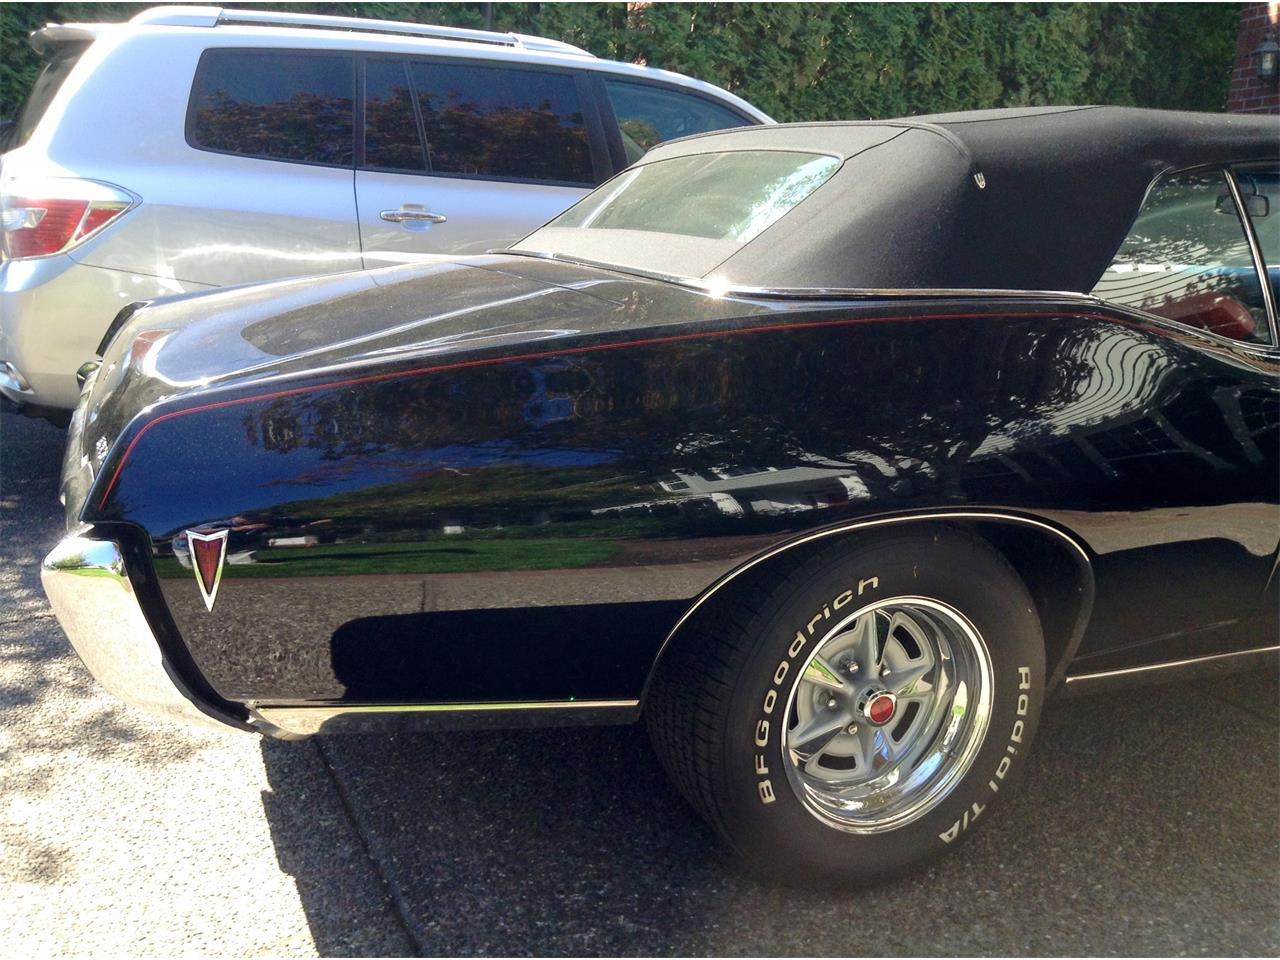 Large Picture of 1968 Pontiac GTO located in Oregon - $49,999.00 Offered by a Private Seller - OG81